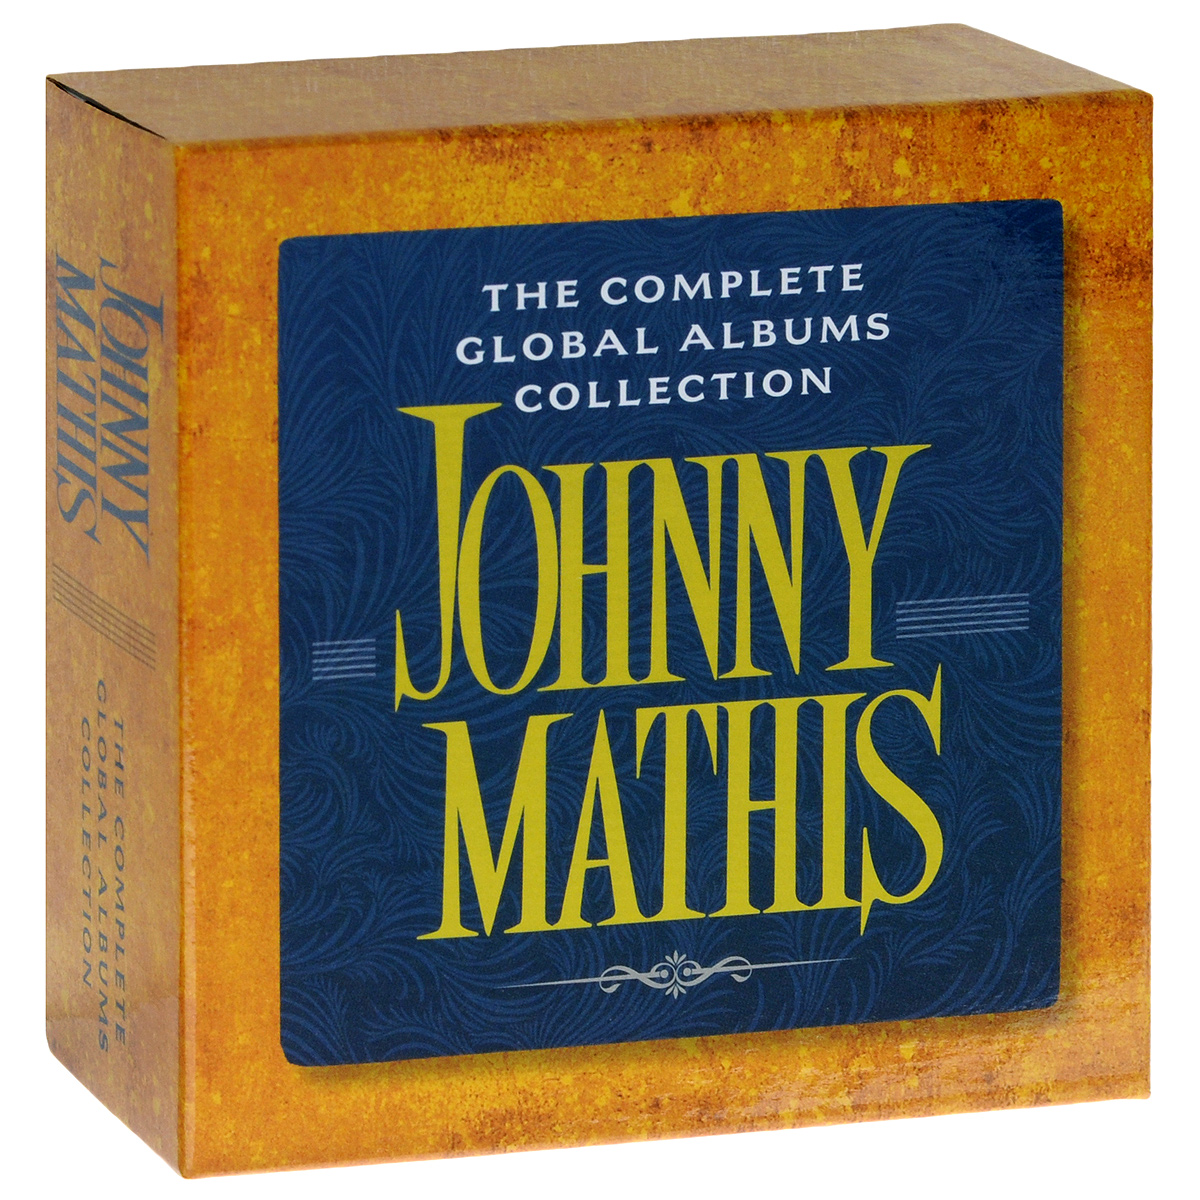 Johnny Mathis. The Complete Global Albums Collection (13 CD)